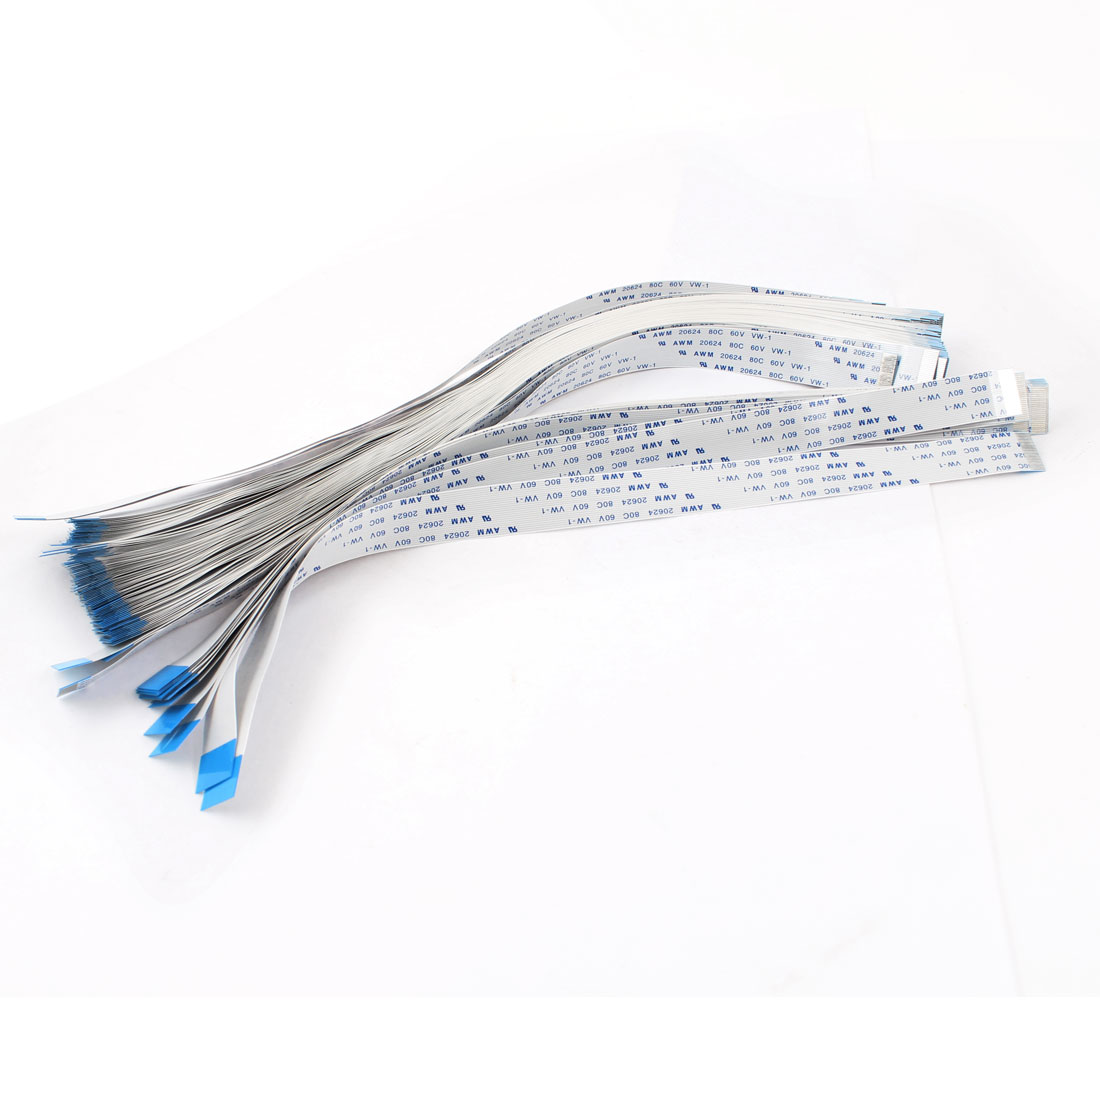 100 Pcs 24 Pins 0.5mm Pitch Flexible Flat Cable FFC 250mm Length